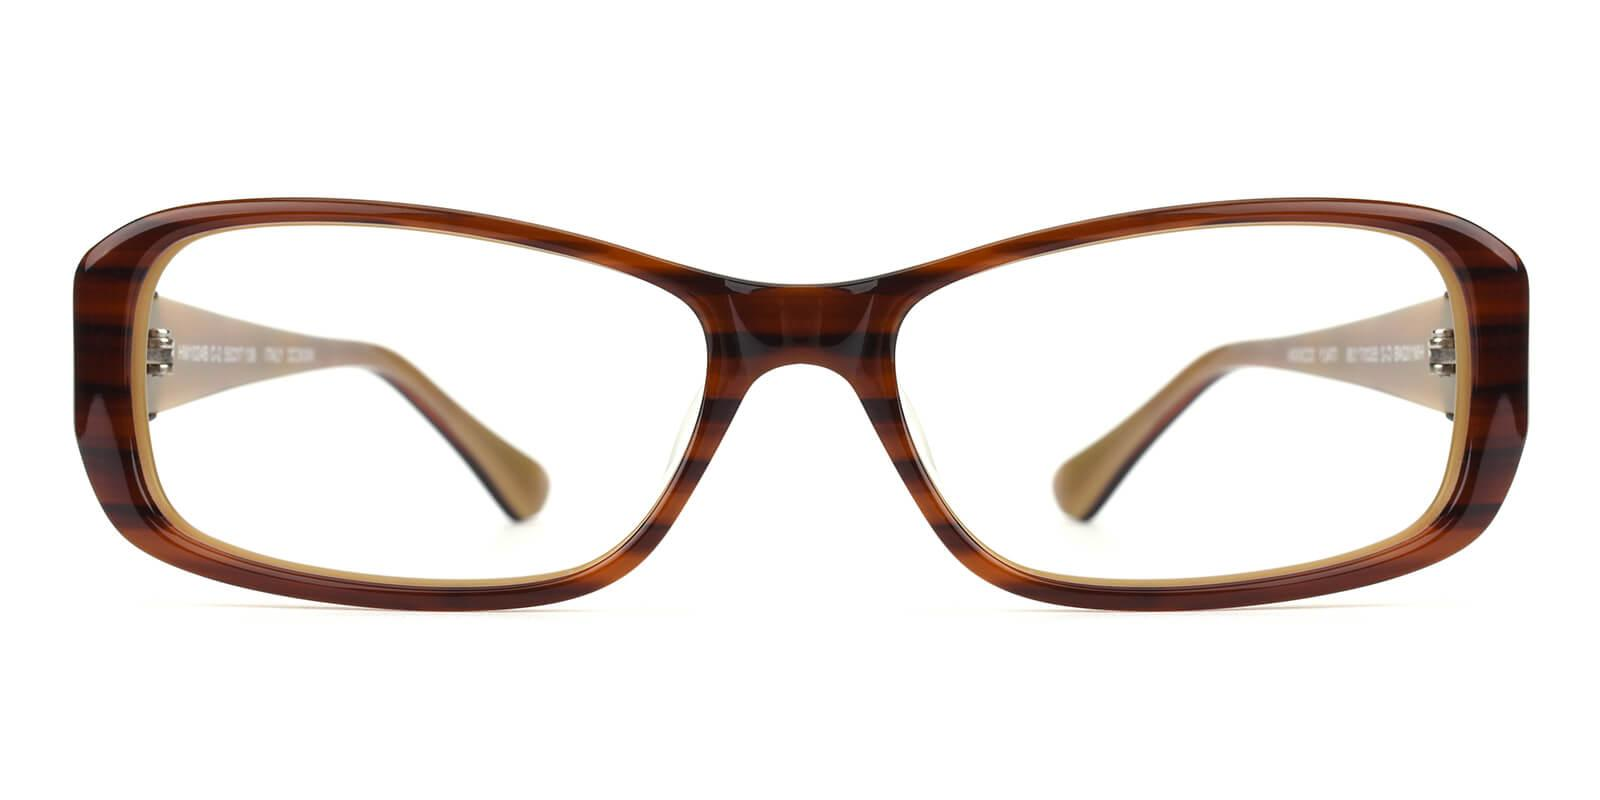 Hgytical-Tortoise-Rectangle-Acetate-Eyeglasses-additional2